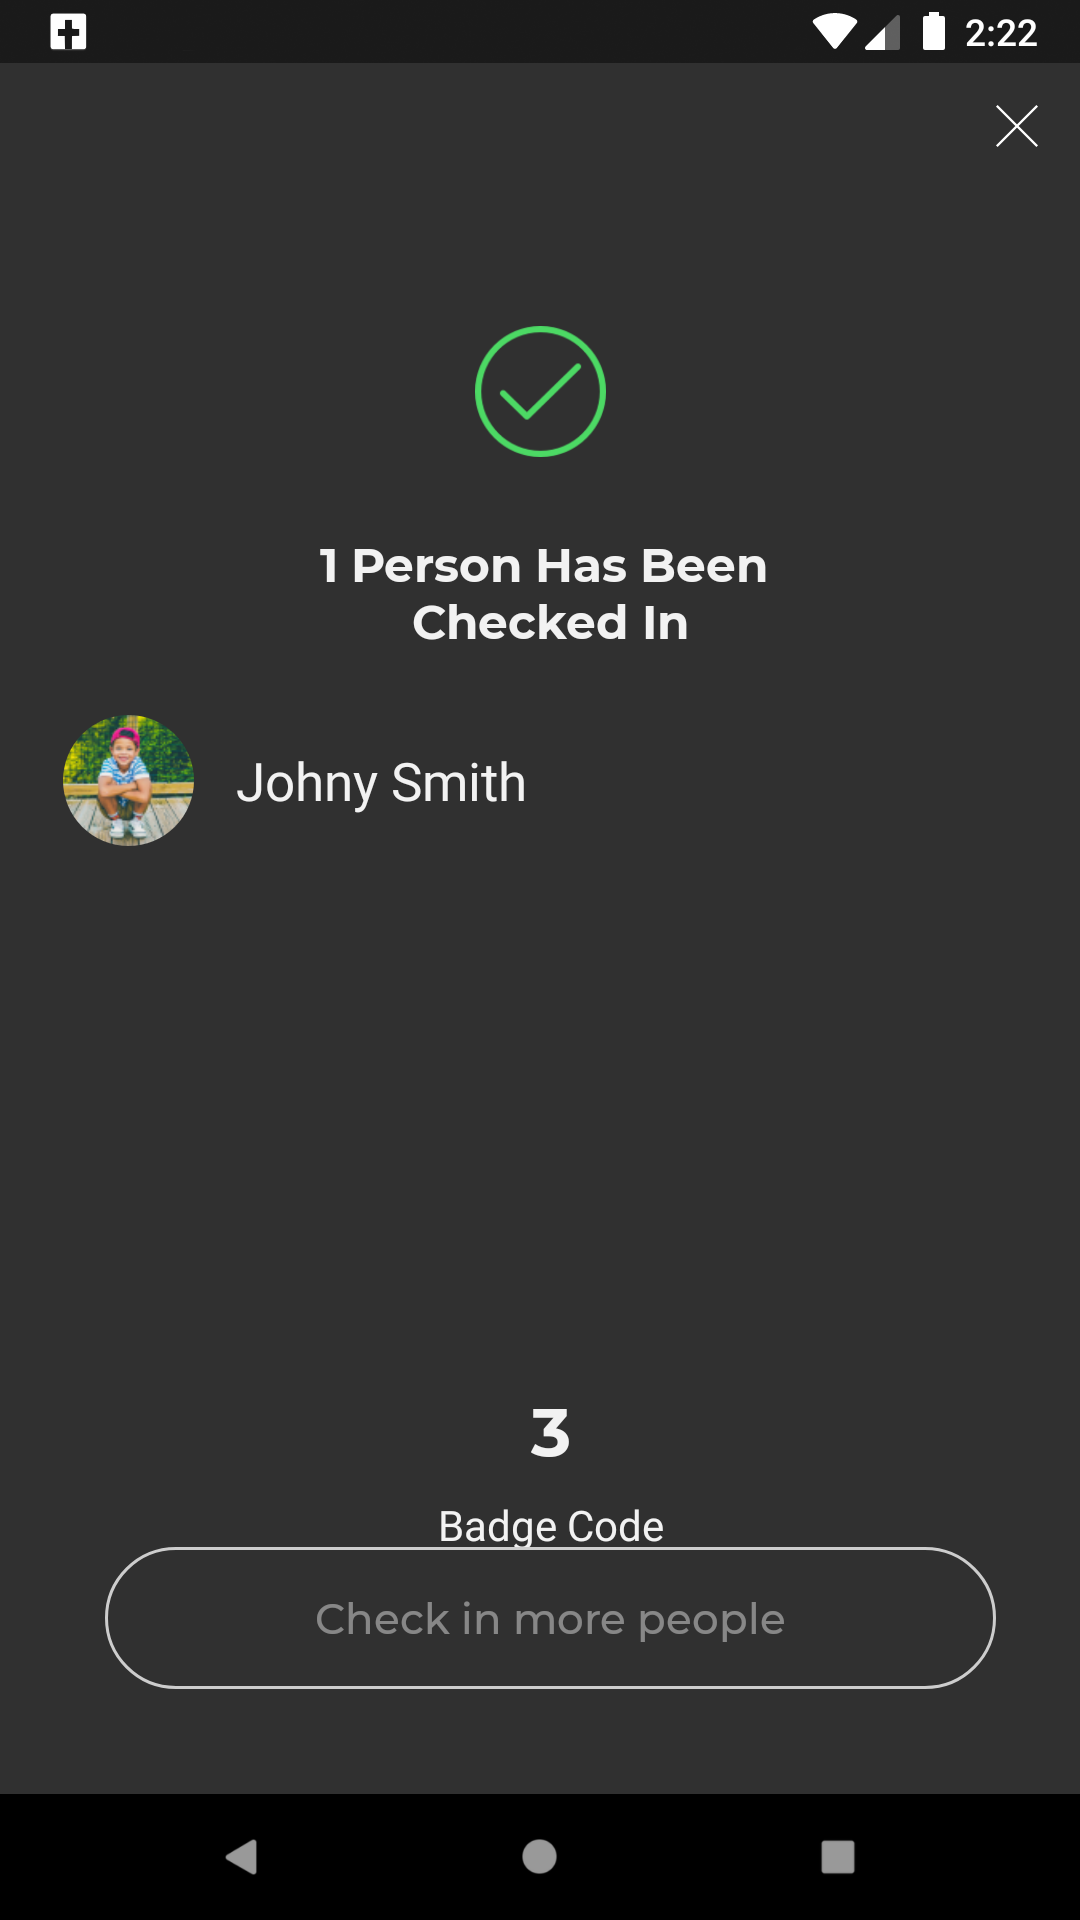 completed self check-in